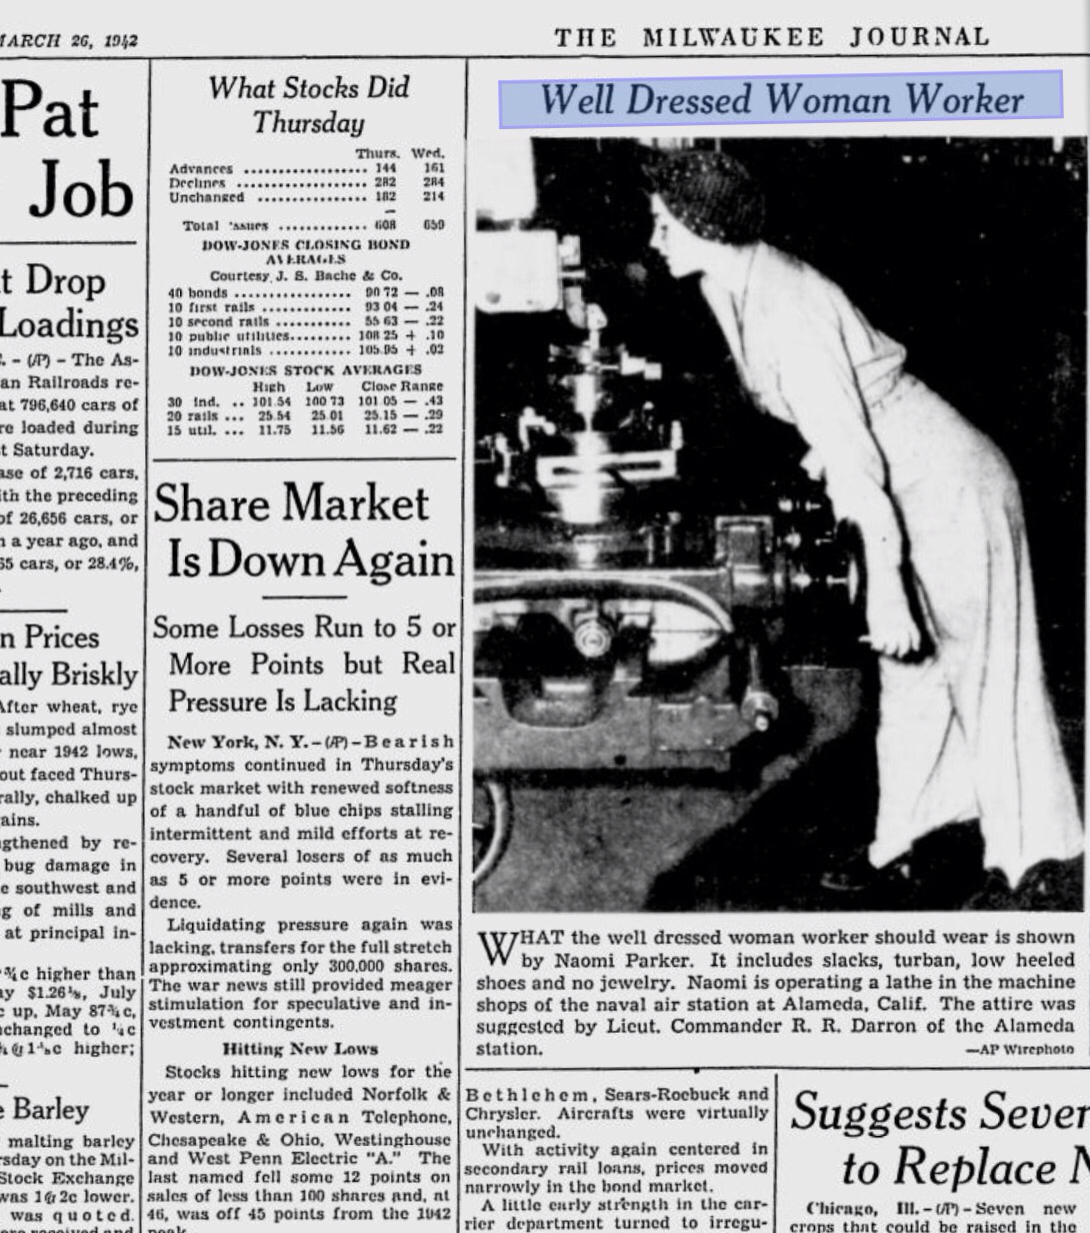 """An article appeared on March the 26th 1942 on """"The Milwaukee Journal"""" showing a picture of Naomi Parker-Fraley with the description of her working outfit while operating a lathe in the naval air station at Alameda, California."""